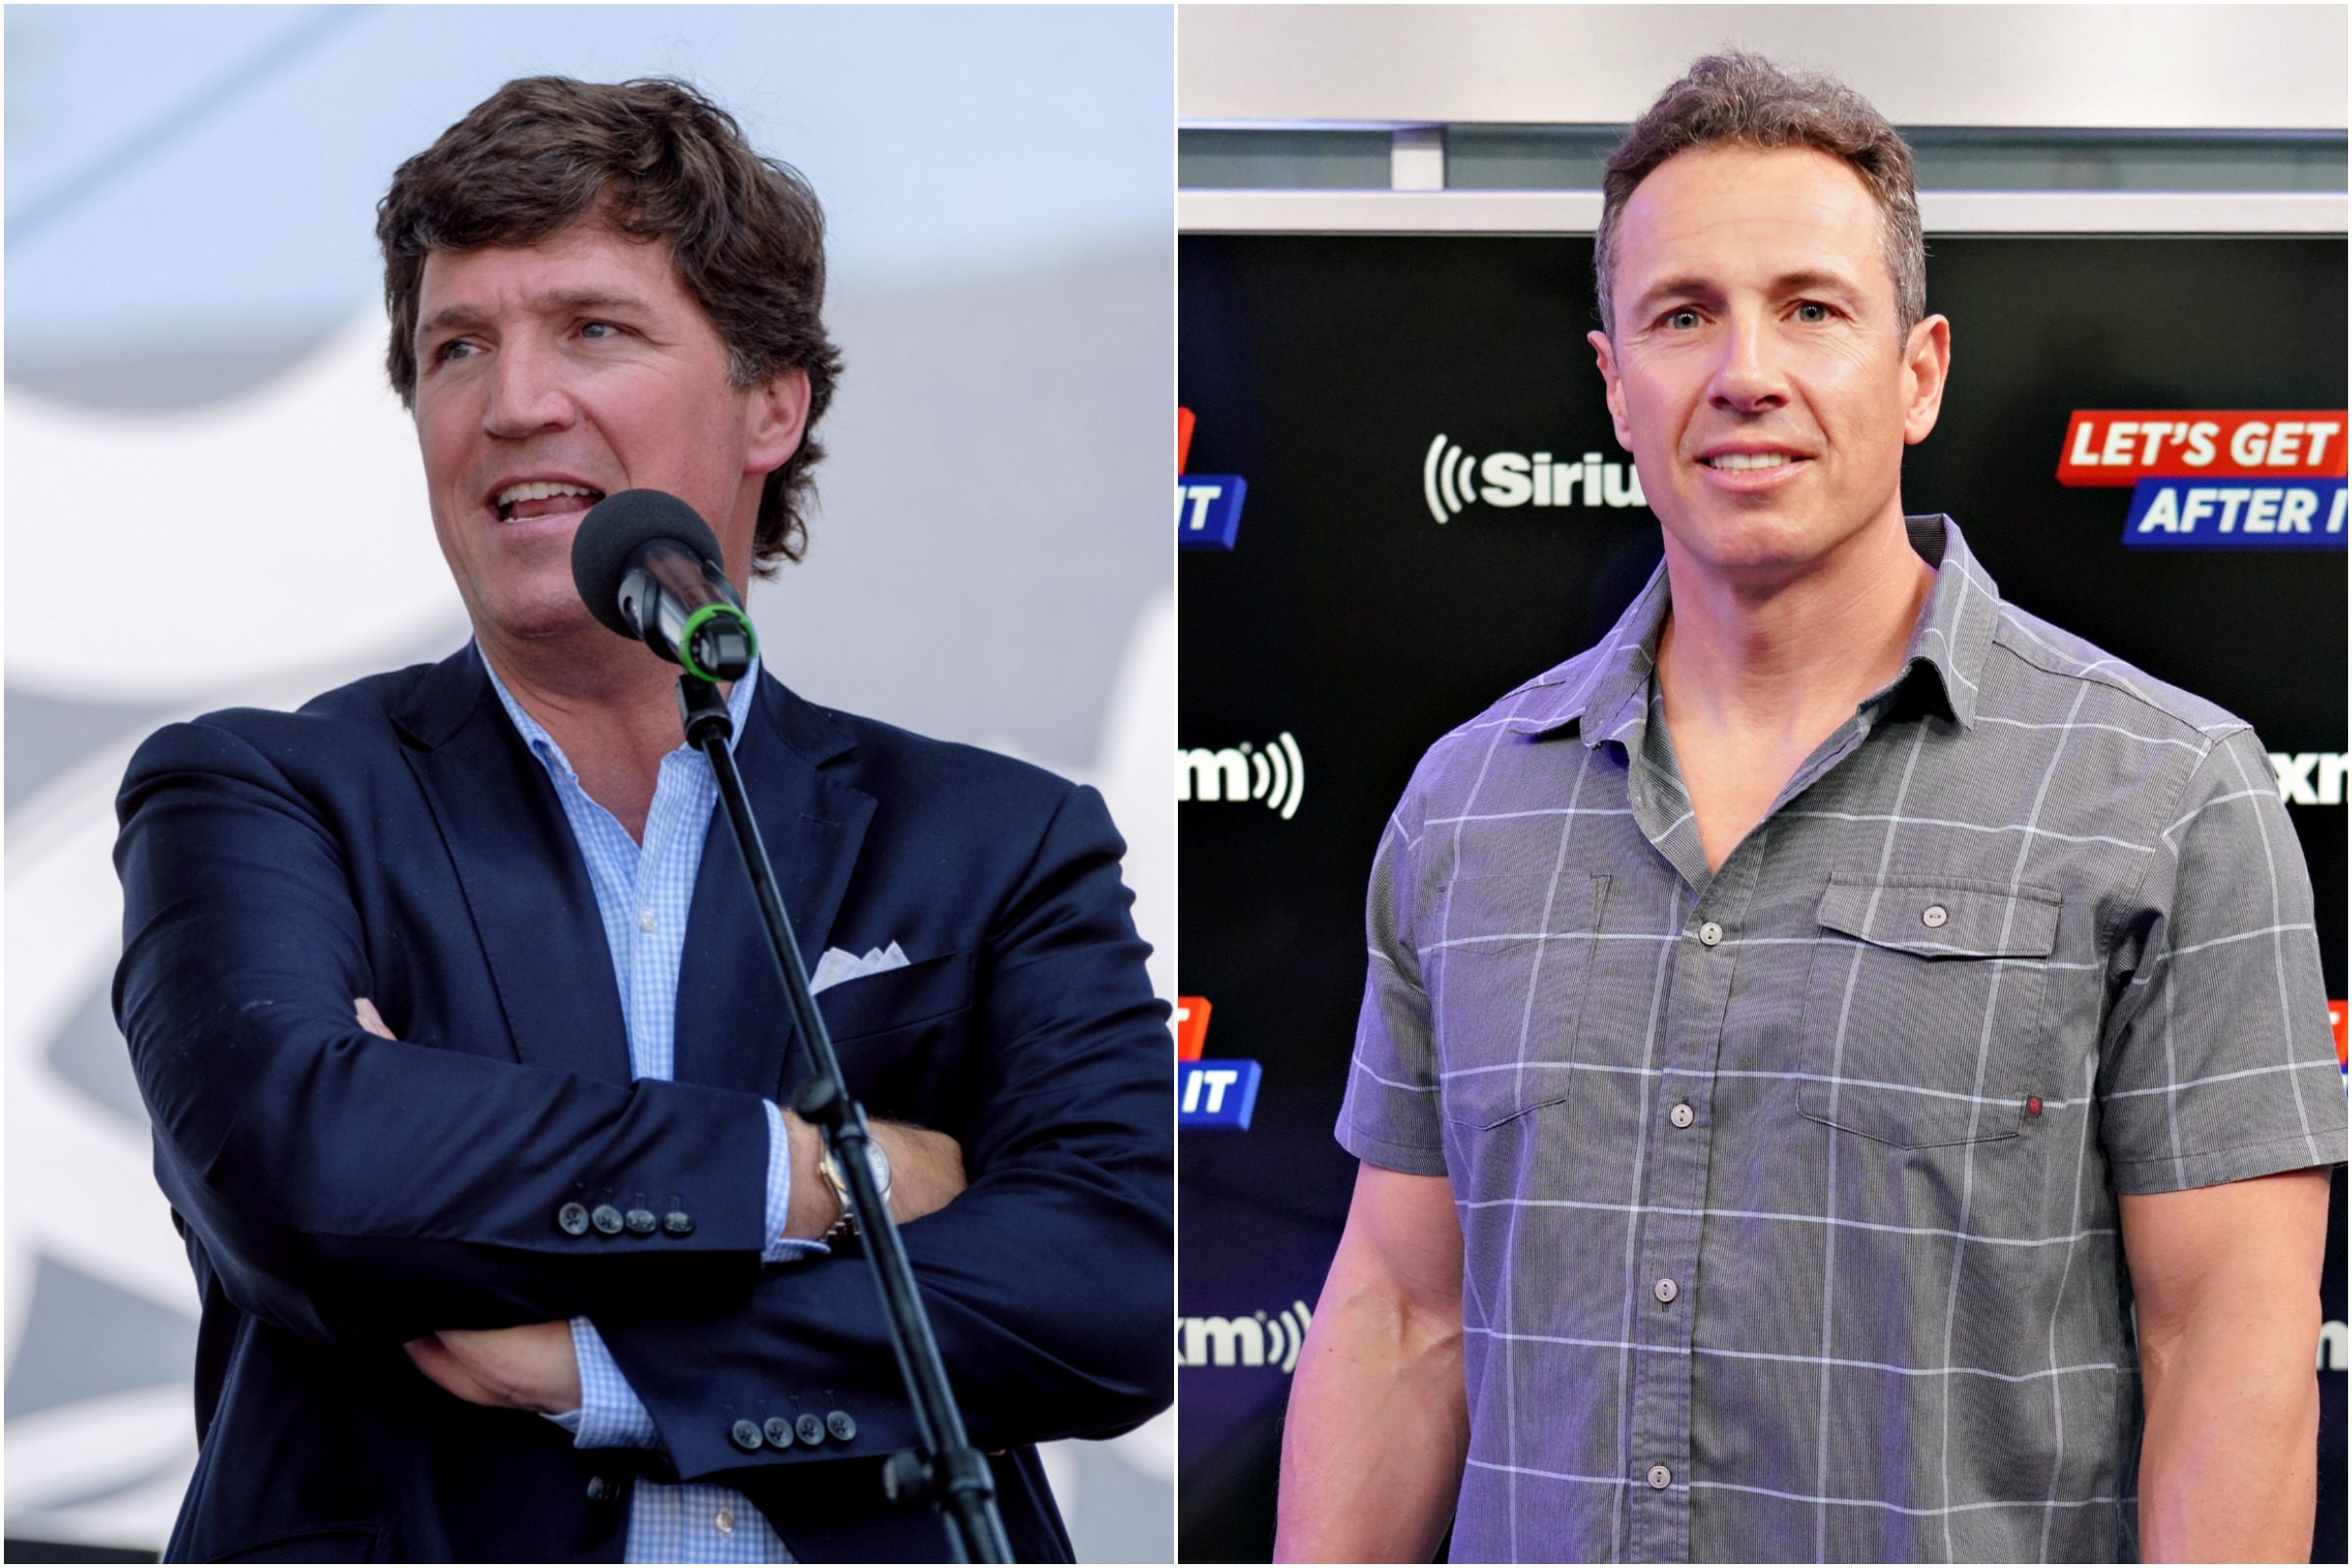 Tucker Carlson Calls Chris Cuomo 'Single Dumbest Person' on Cable News - Newsweek